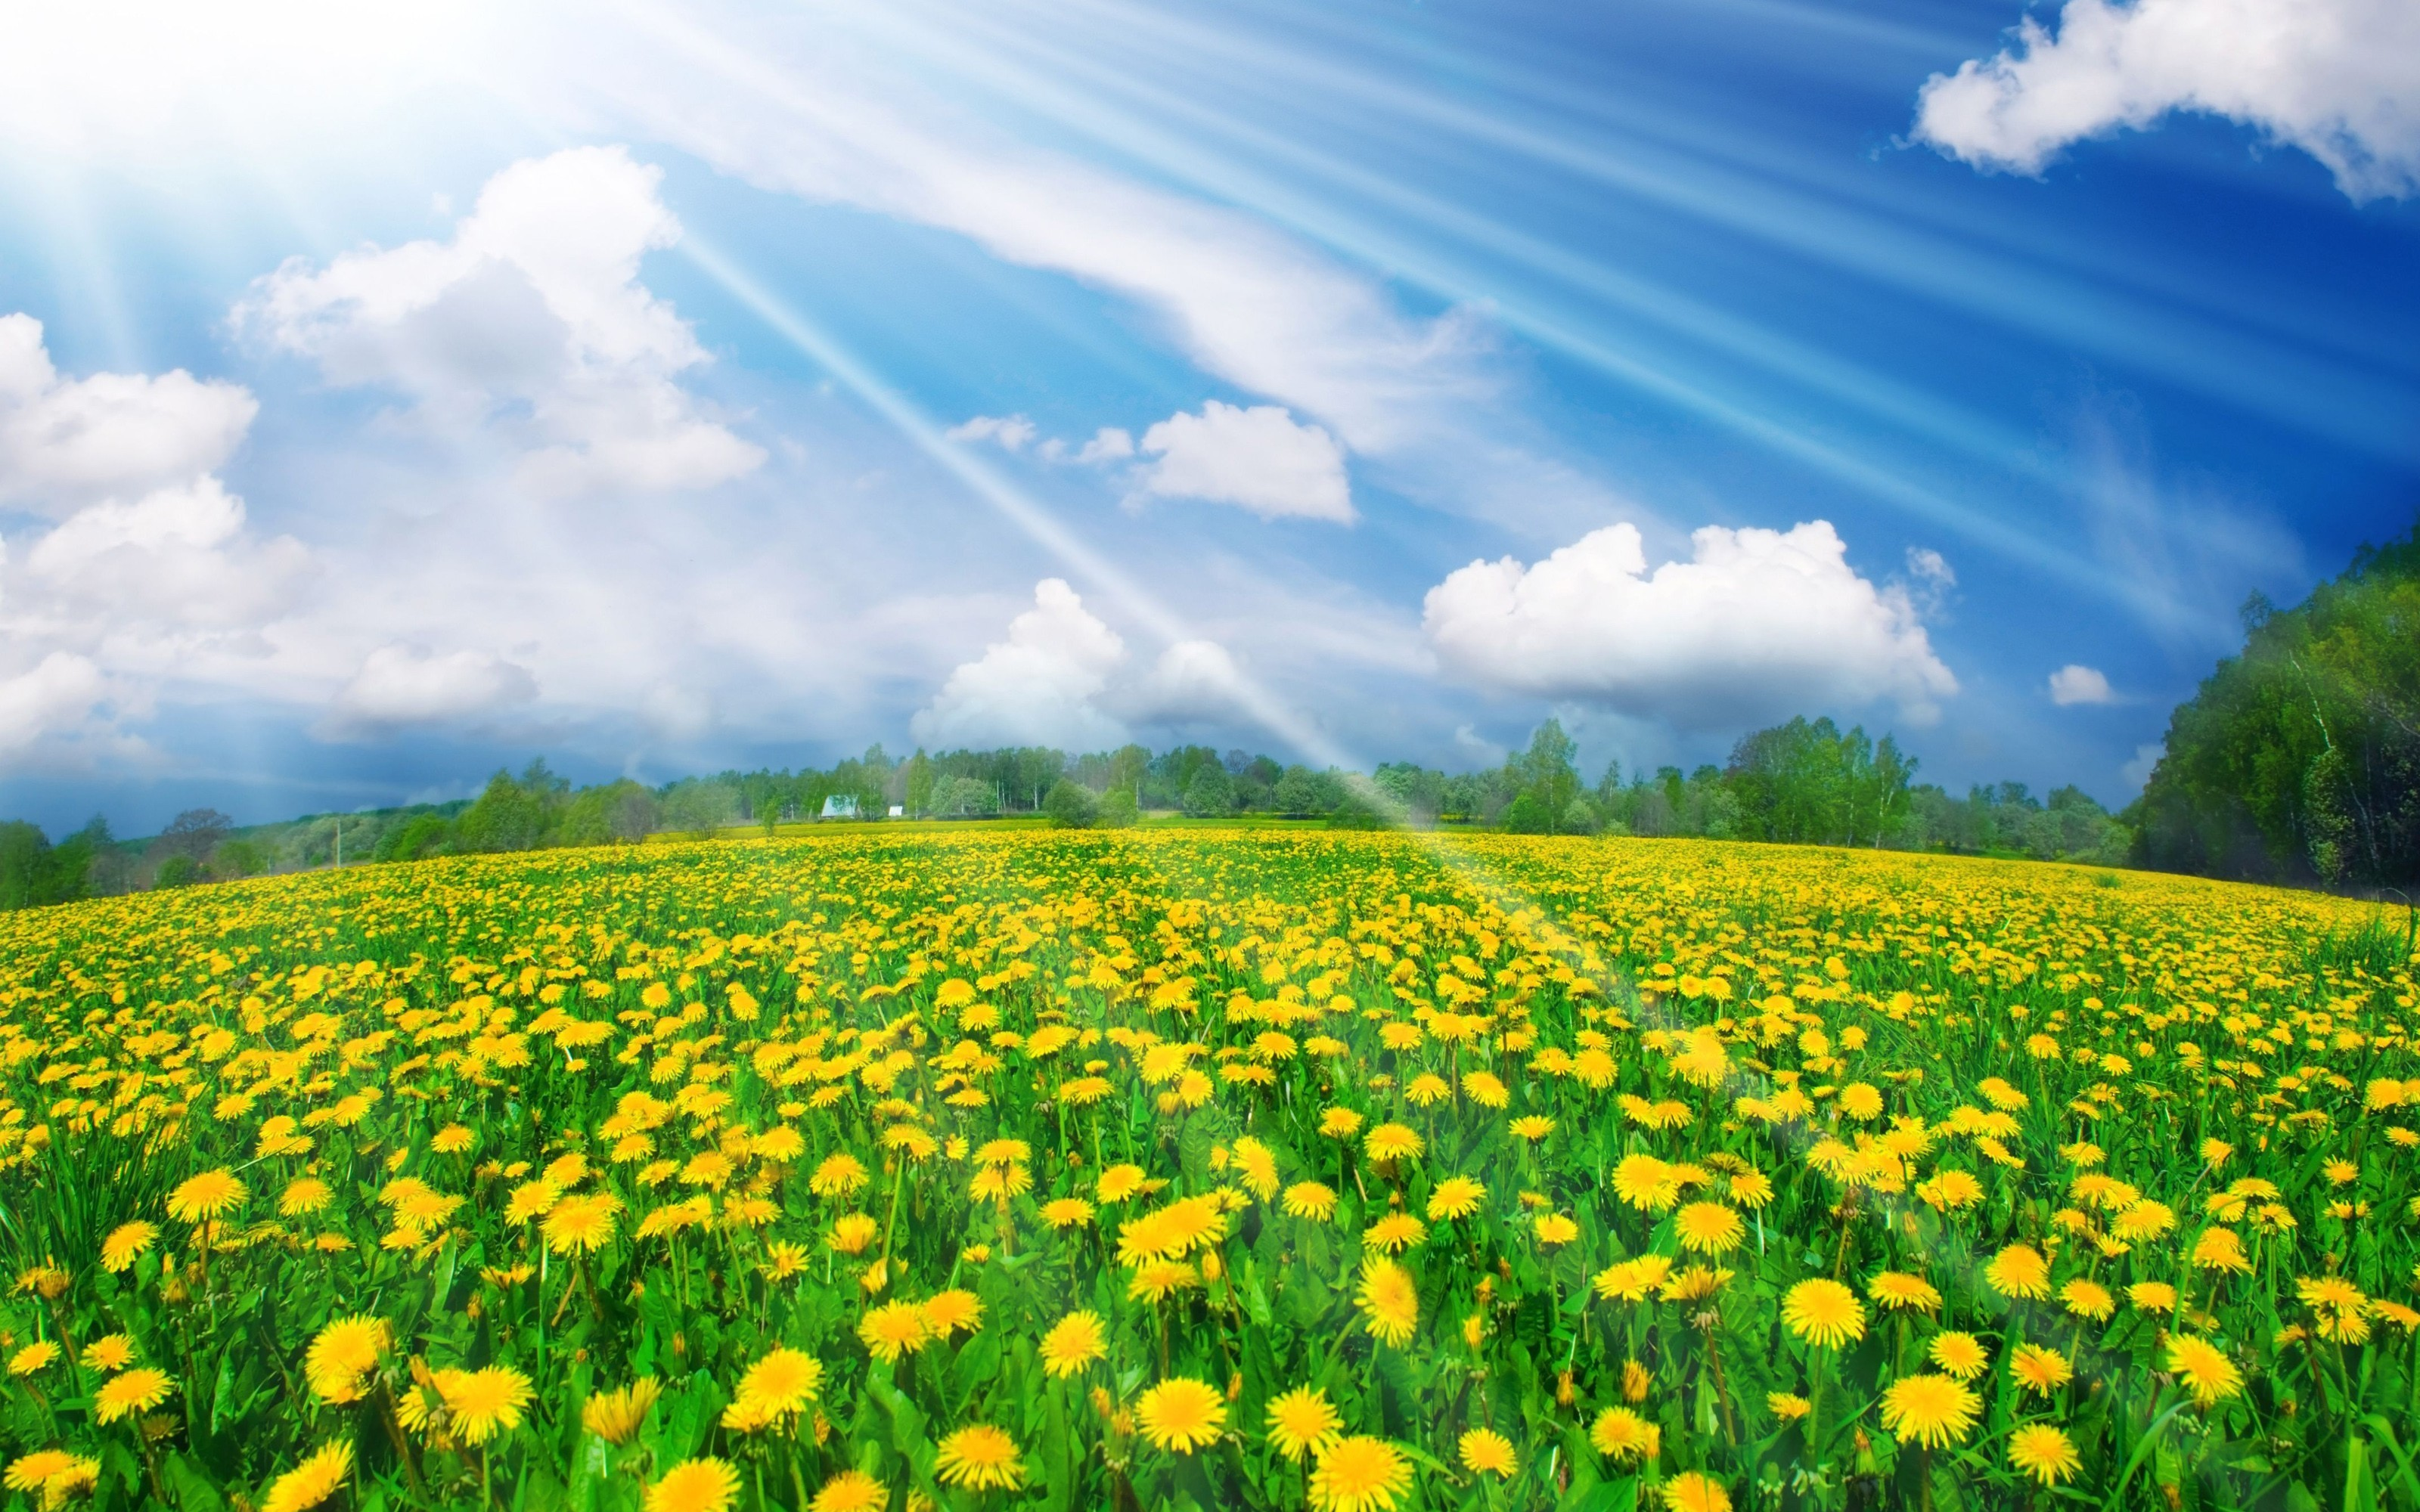 Dandelion field in summer wallpapers and images   wallpapers pictures 3200x2000